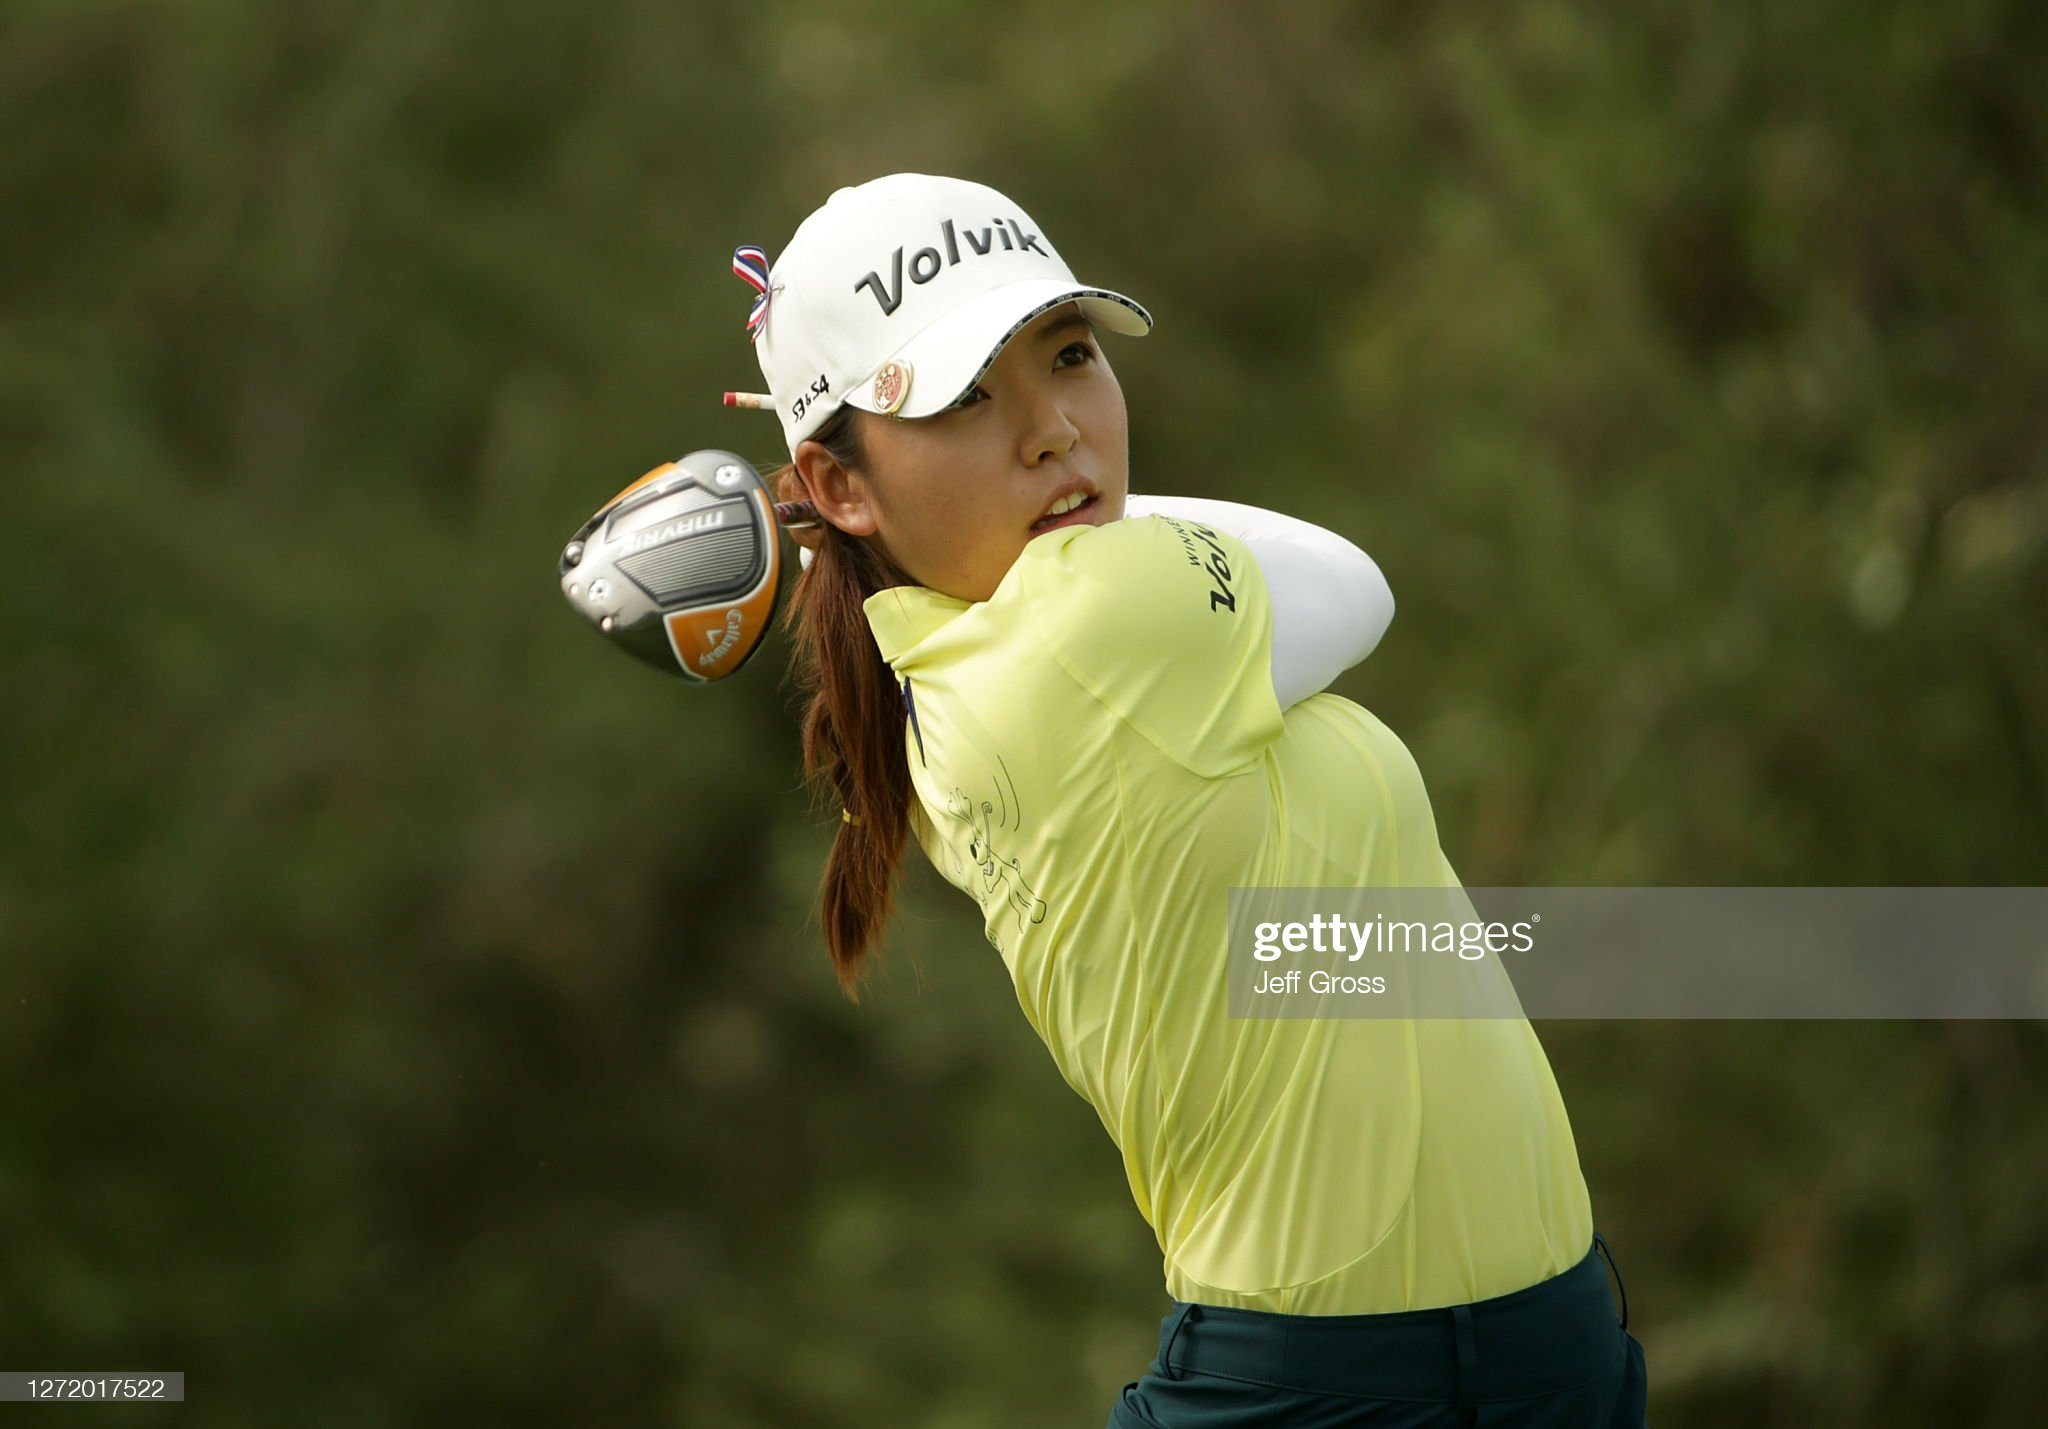 https://media.gettyimages.com/photos/mi-hyang-lee-of-south-korea-plays-a-tee-shot-on-the-seventh-hole-the-picture-id1272017522?s=2048x2048